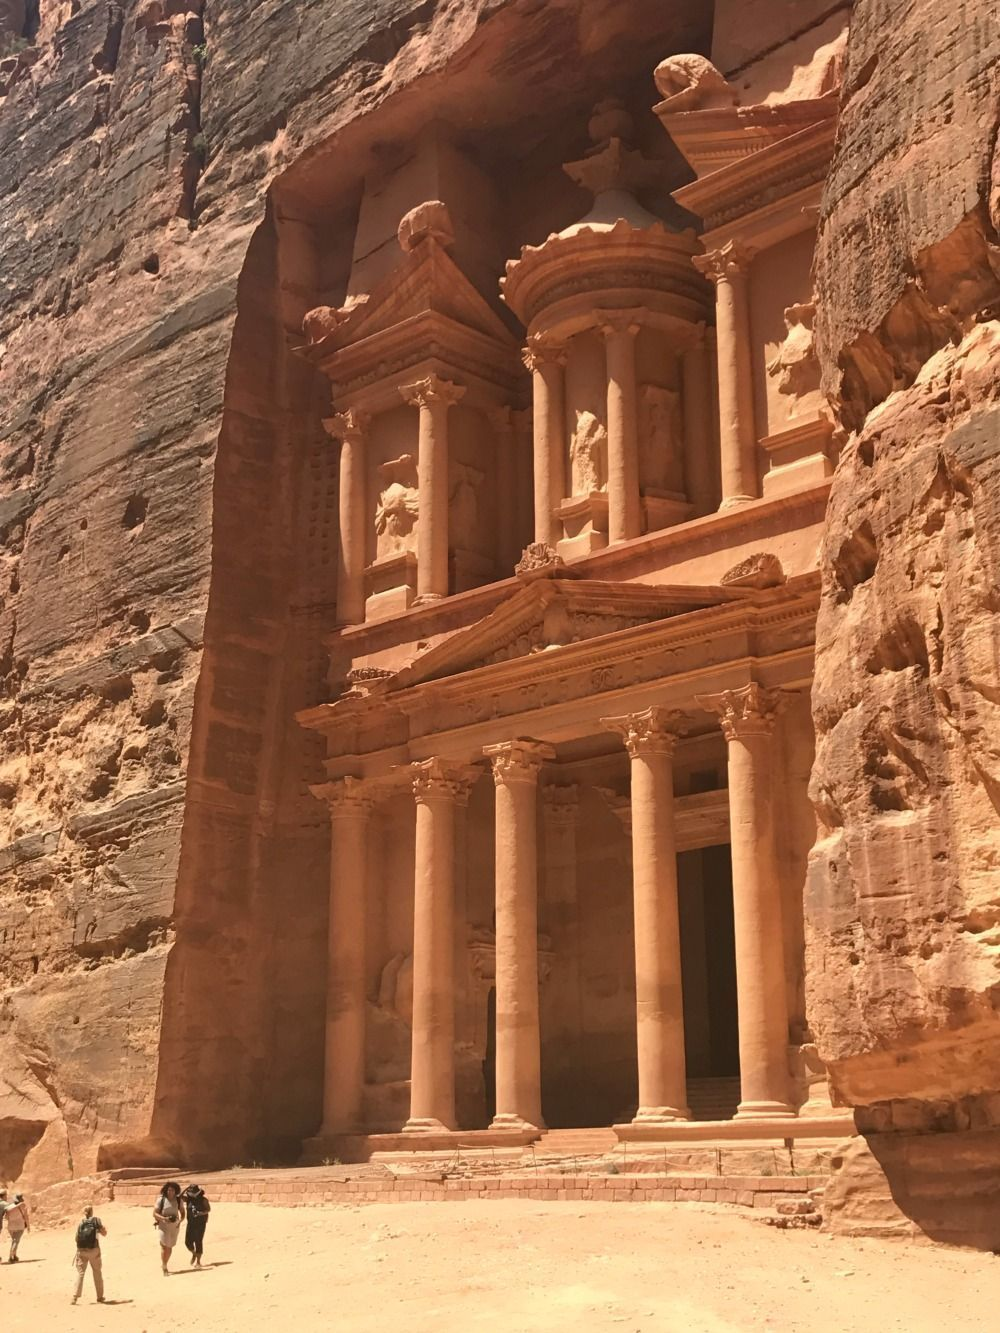 5 things I wish I'd known before travelling to Jordan #traveltojordan 5 things to know before traveling to Jordan. Petra is one of the many stunning landmarks in Jordan drawing tourists in from around the world. #traveltojordan 5 things I wish I'd known before travelling to Jordan #traveltojordan 5 things to know before traveling to Jordan. Petra is one of the many stunning landmarks in Jordan drawing tourists in from around the world. #traveltojordan 5 things I wish I'd known before trave #traveltojordan